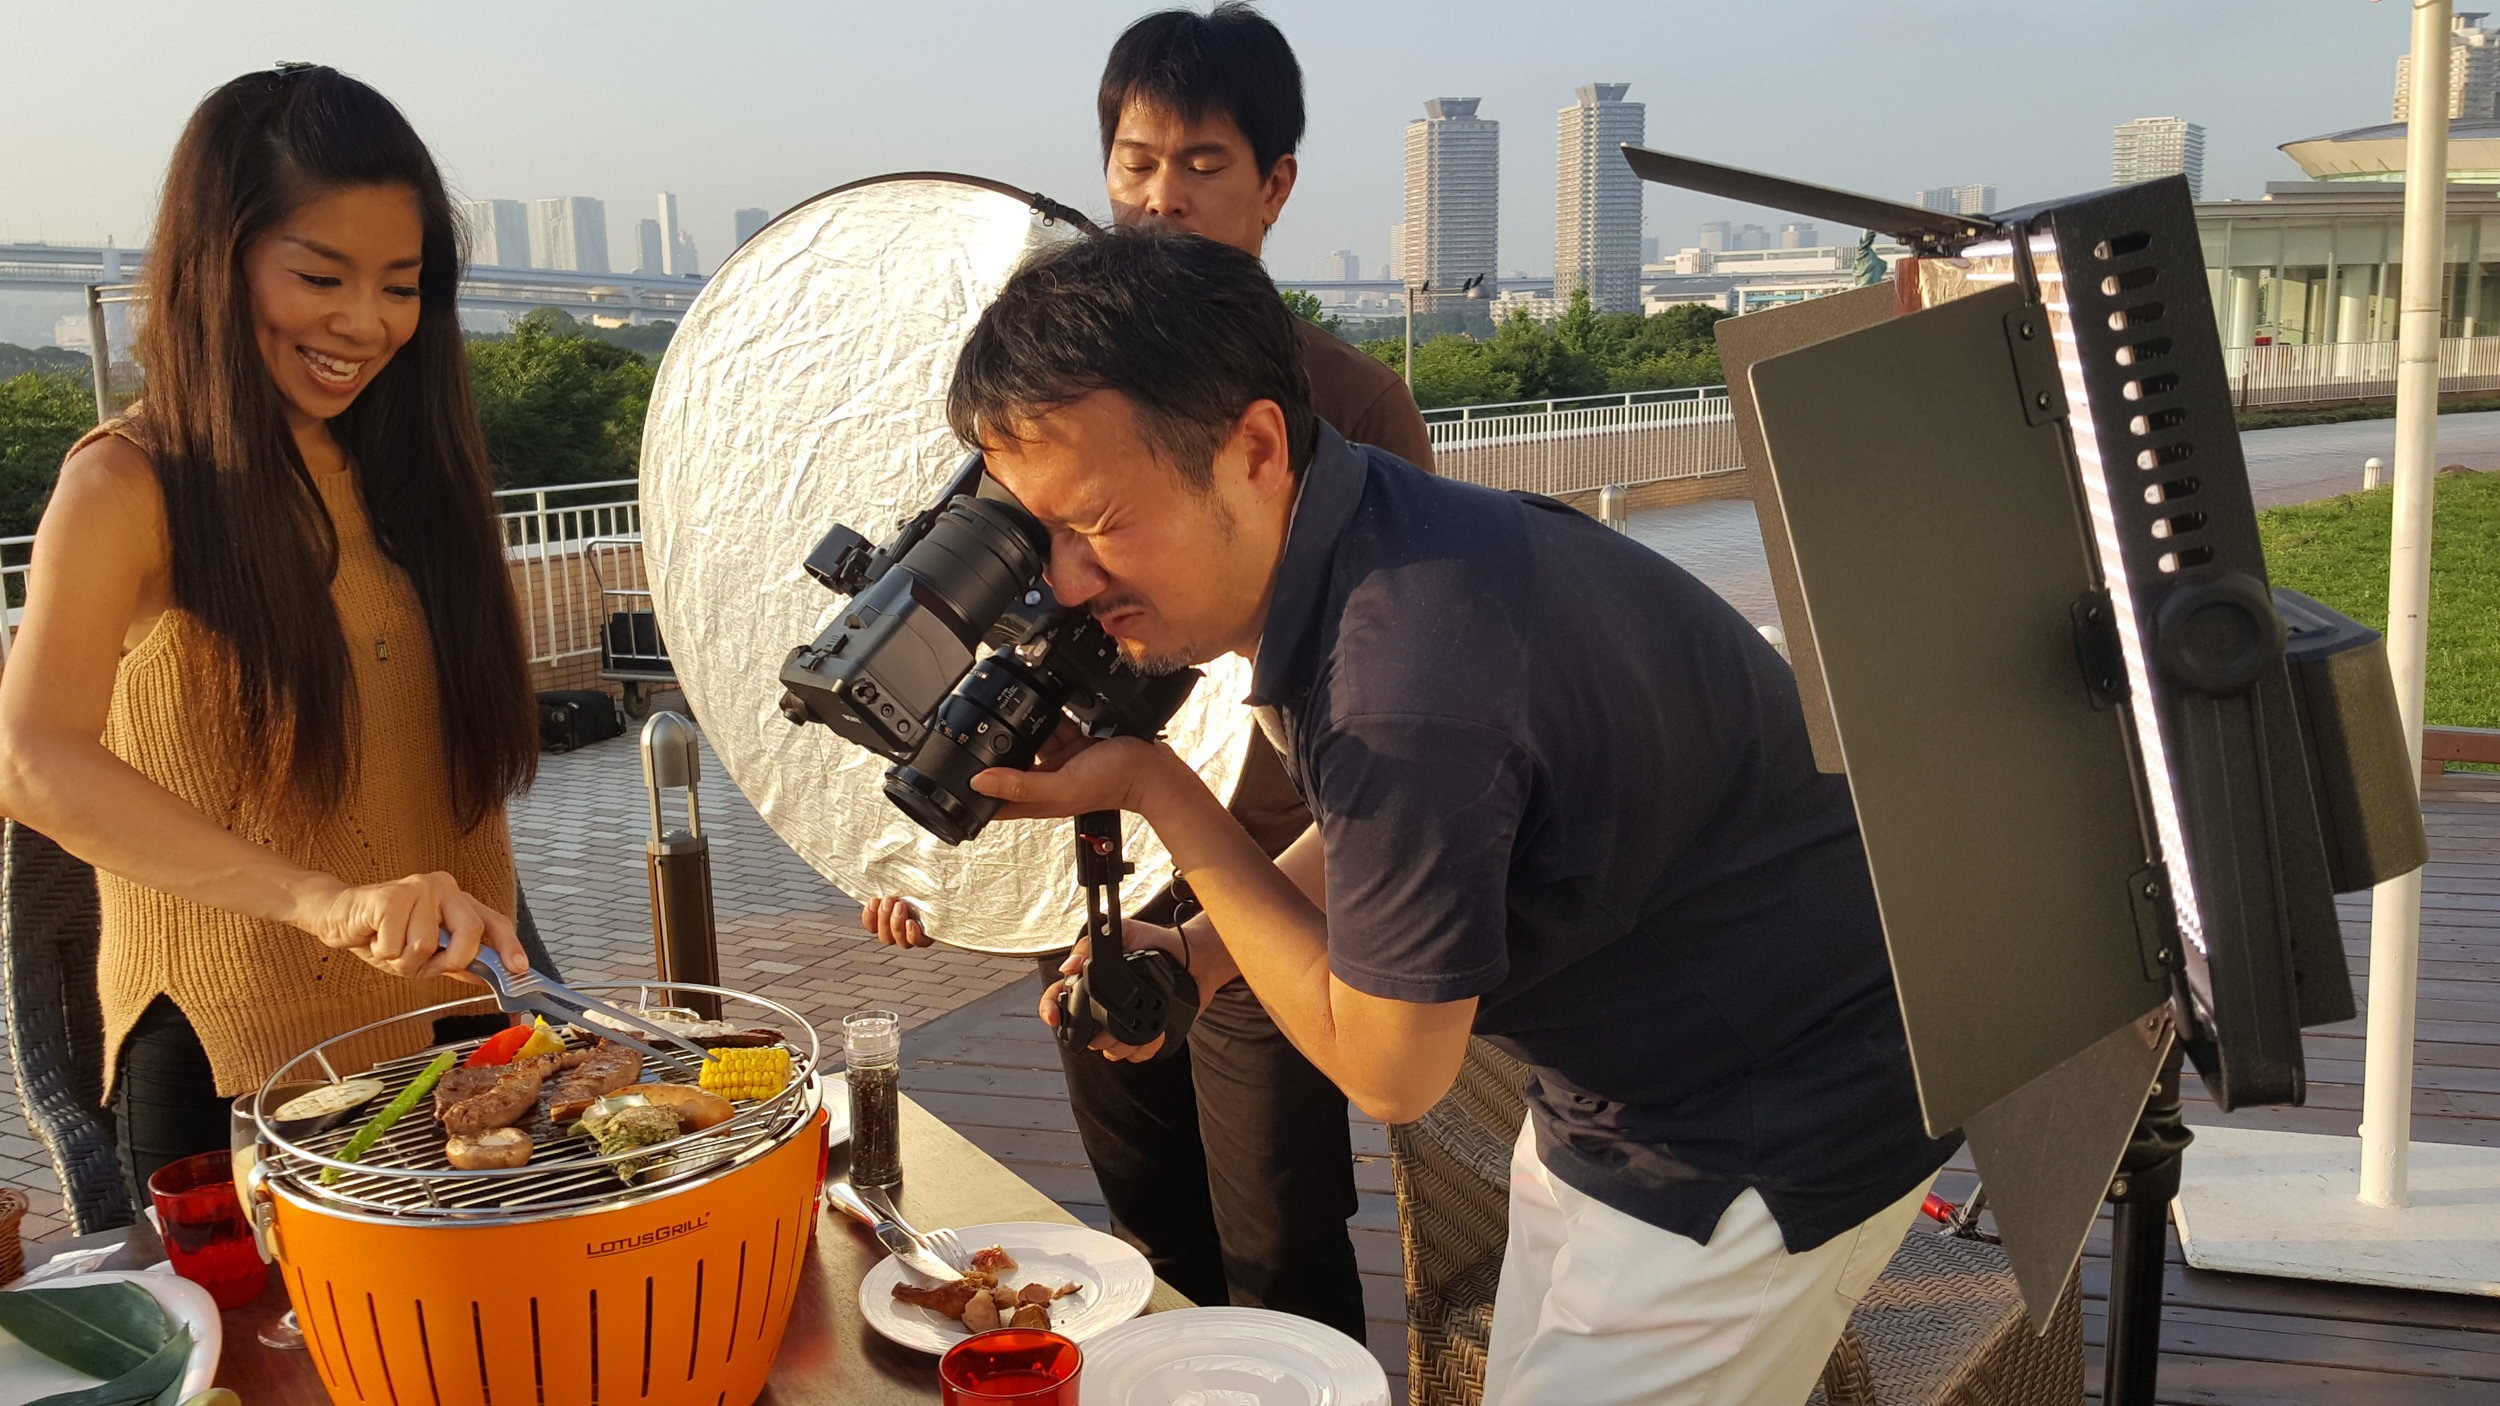 Shooting 4K video on location at Hilton Tokyo Odaiba.